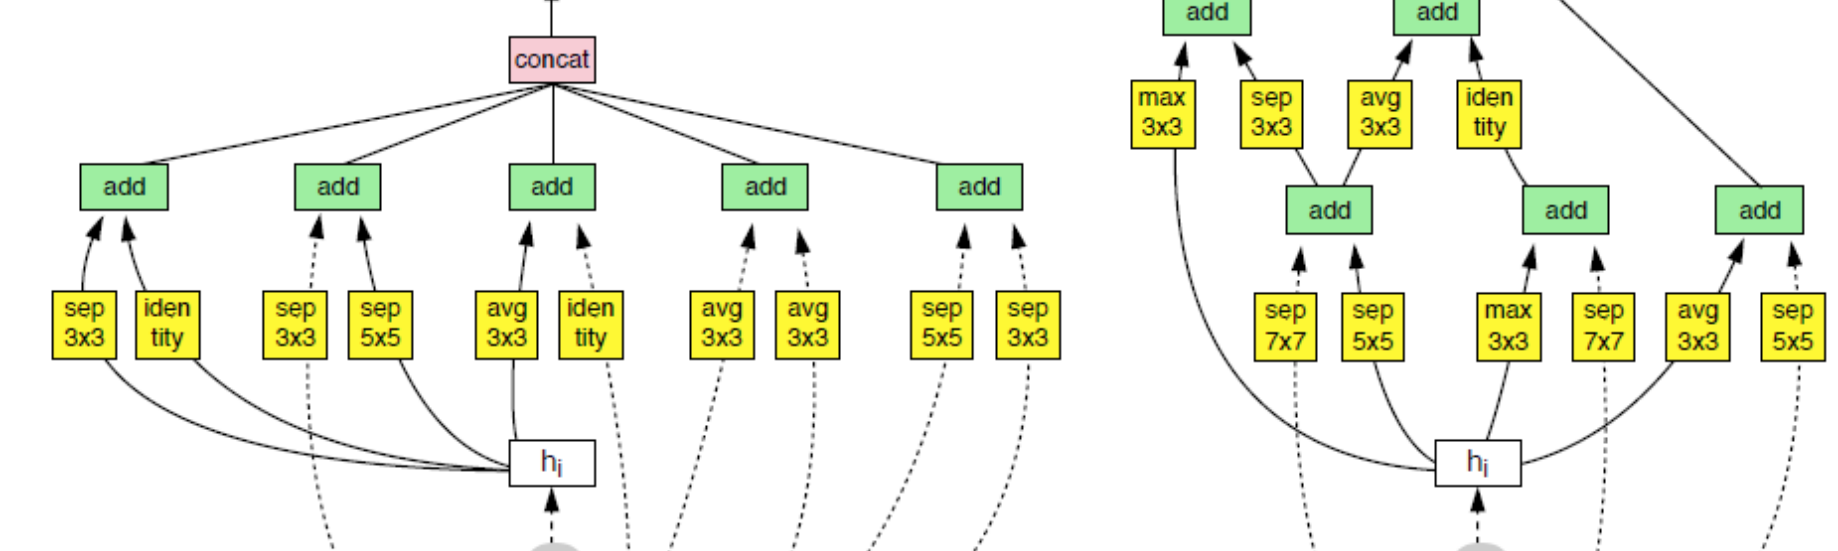 Review: NASNet — Neural Architecture Search Network (Image